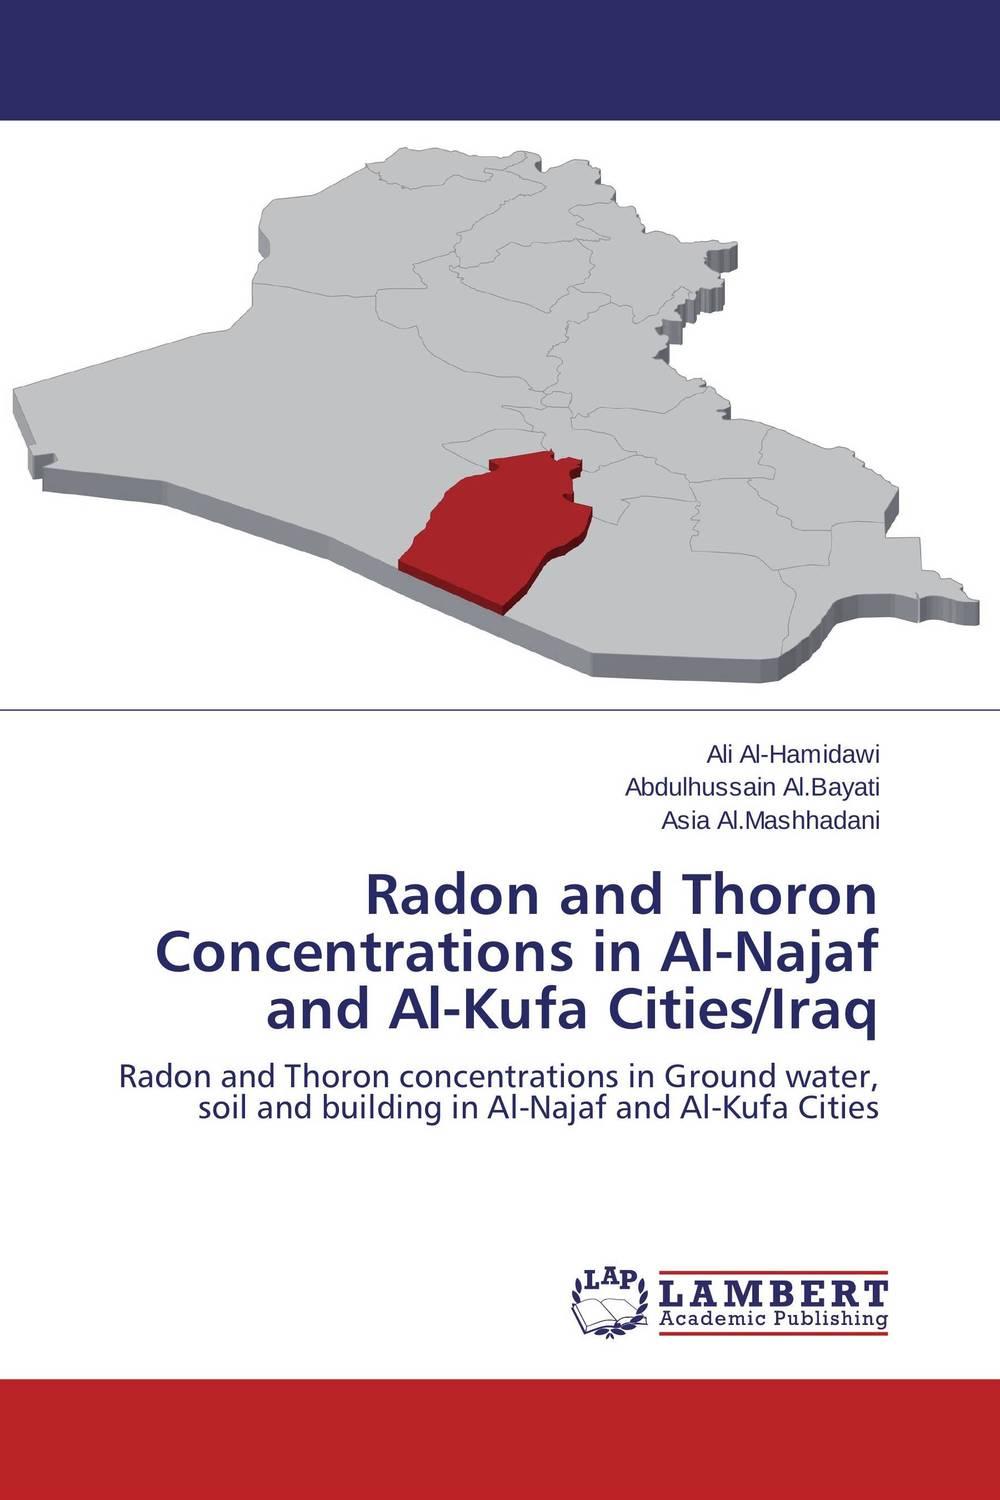 Radon and Thoron Concentrations in Al-Najaf and Al-Kufa Cities/Iraq kawther al yassery ali almohana and samer al hilali molecular charactrization of enterococcus faecalis